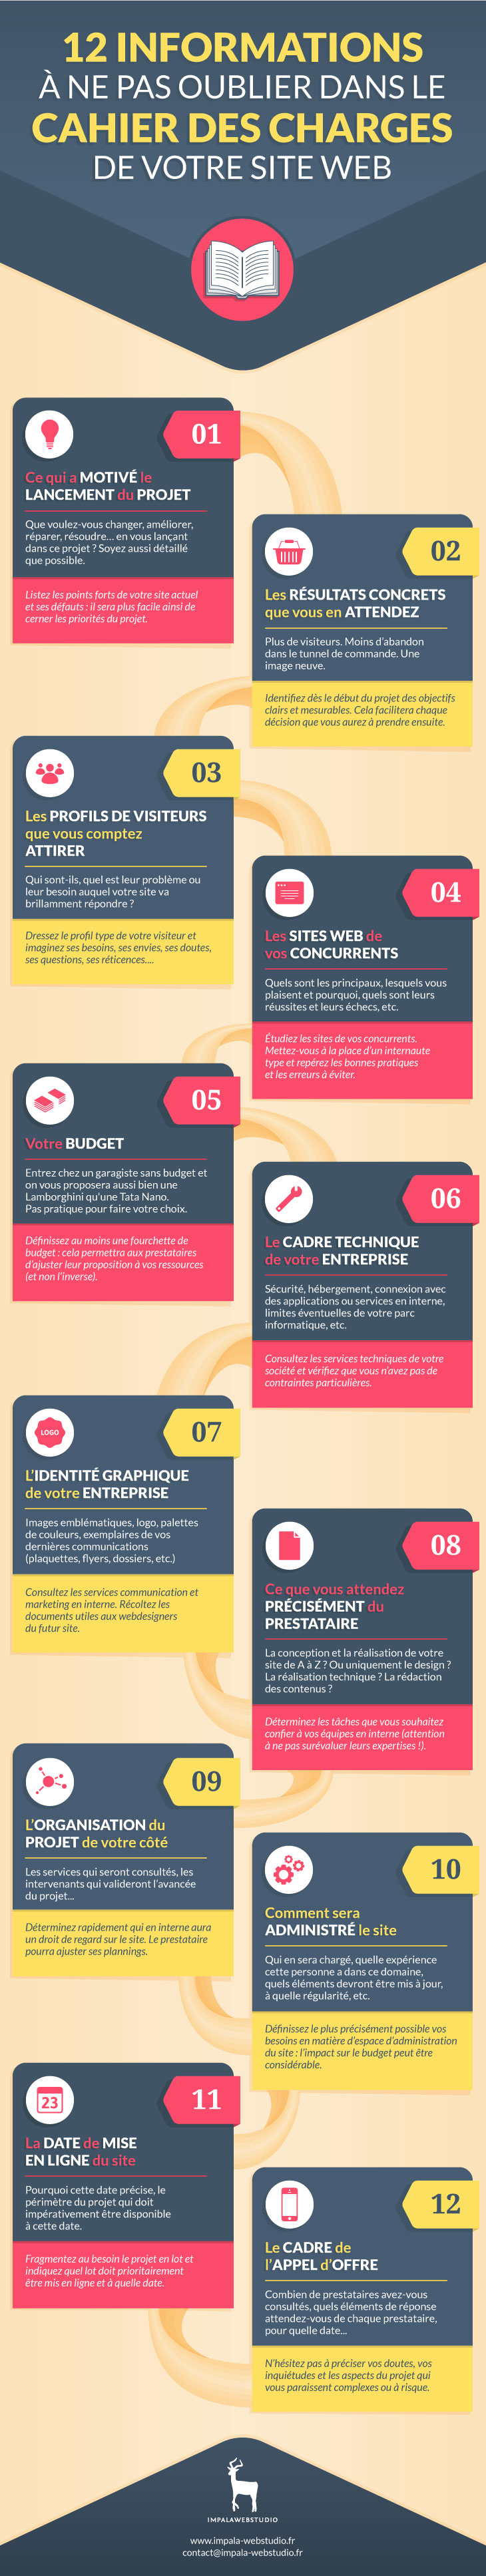 infographie-cahier-des-charges-site-internet